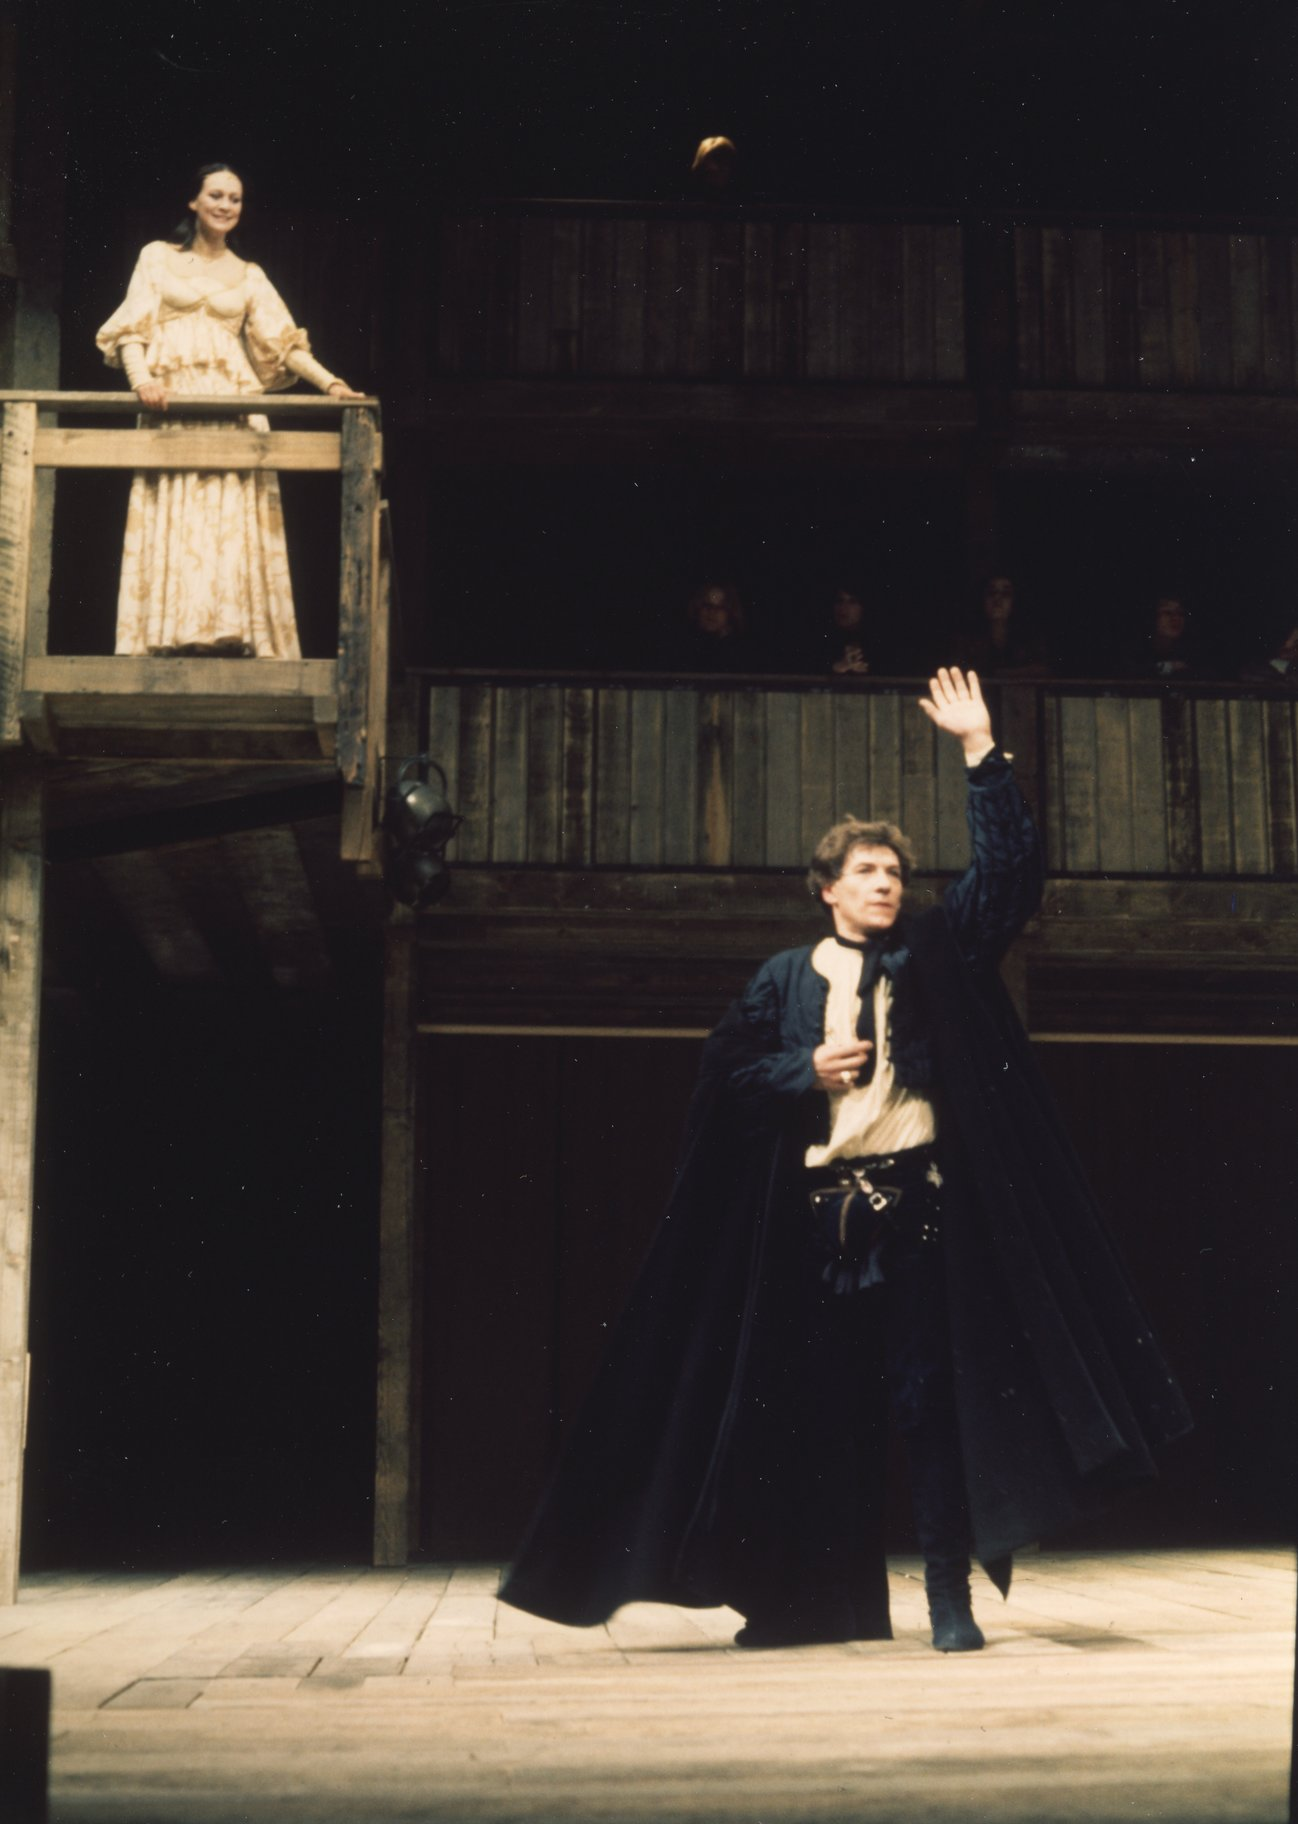 Romeo stands under Juliet's balcony.